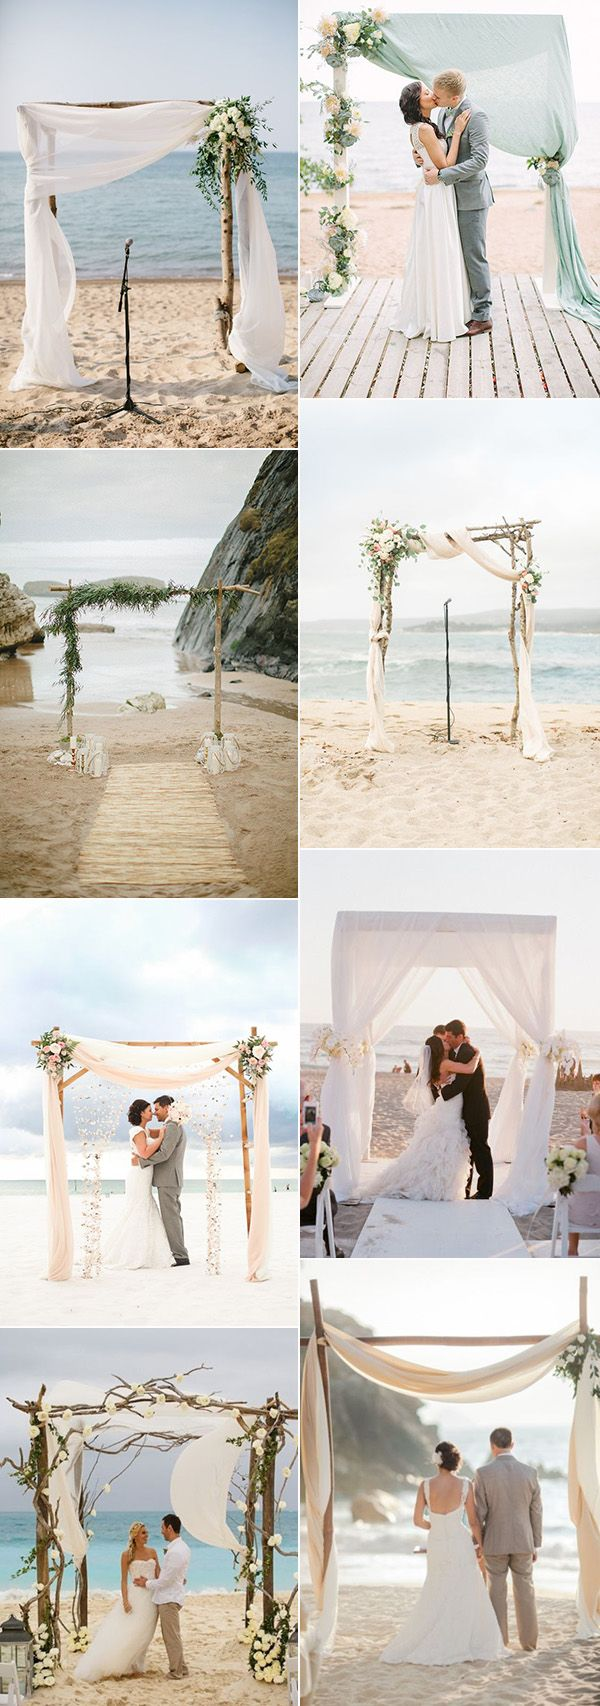 Rustic driftwood style beach wedding arch in the caribbean rustic driftwood style beach wedding arch in the caribbean brilliant studios turks and caicos grace bay club weddings outdoor wedding tips pinterest junglespirit Images